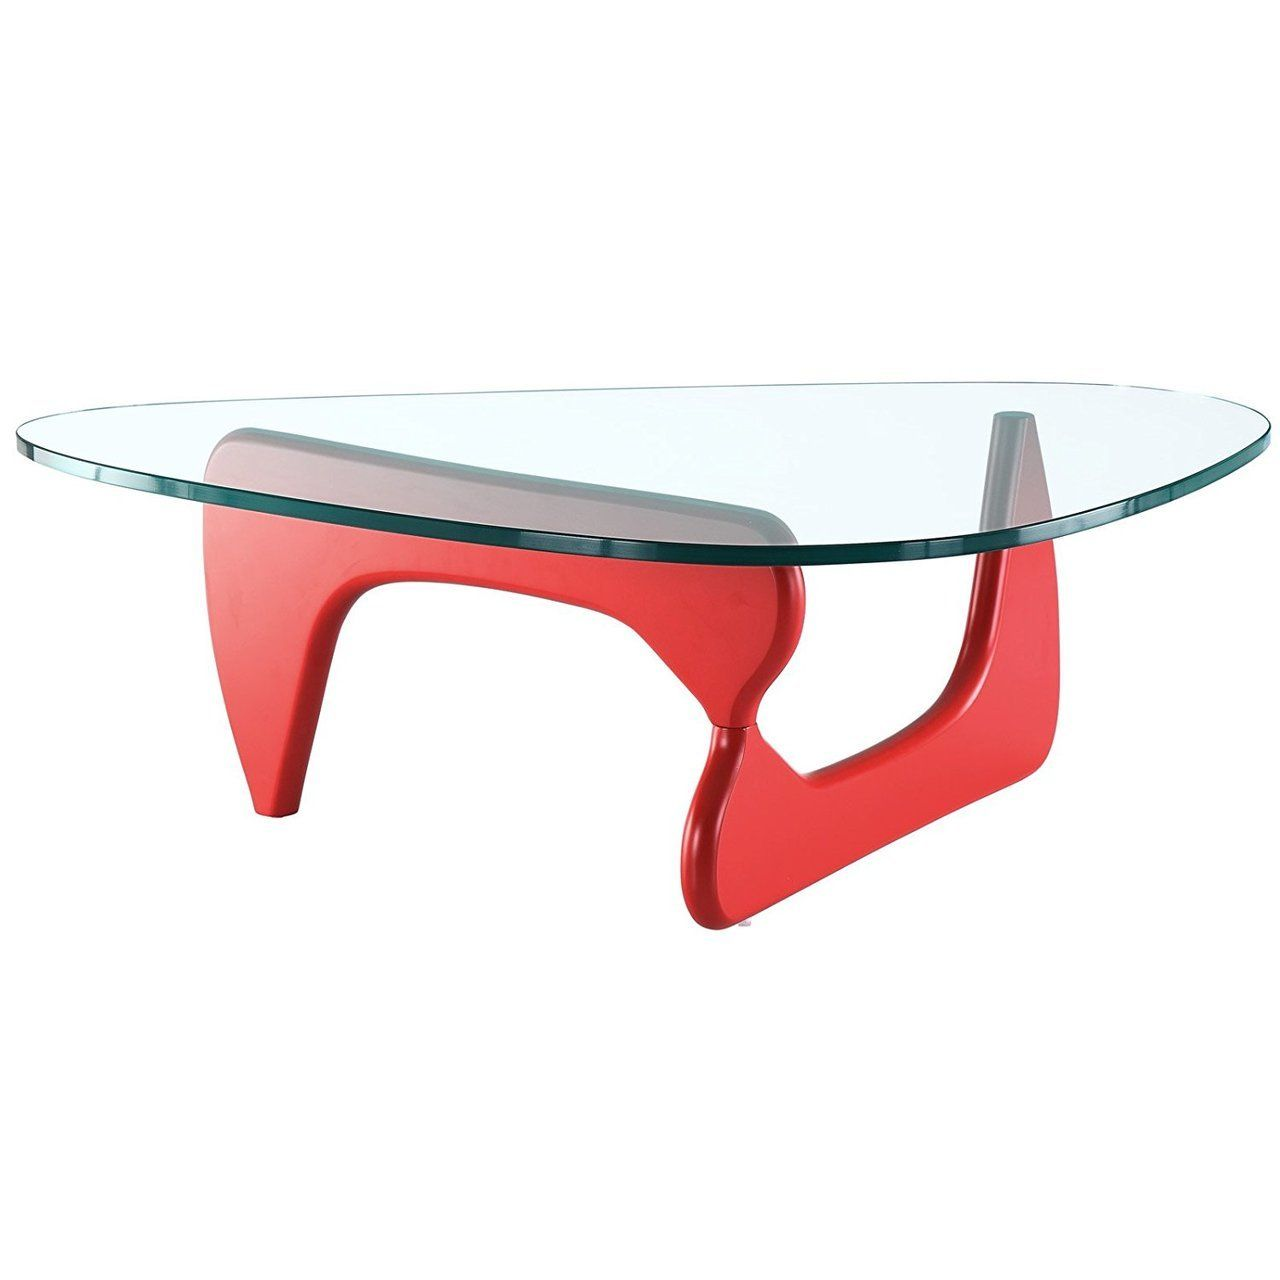 Replica Noguchi Coffee Table Red Timber 20mm Tempered Glass Noguchi Coffee Table Modern Coffee Tables Coffee Table [ 1280 x 1280 Pixel ]